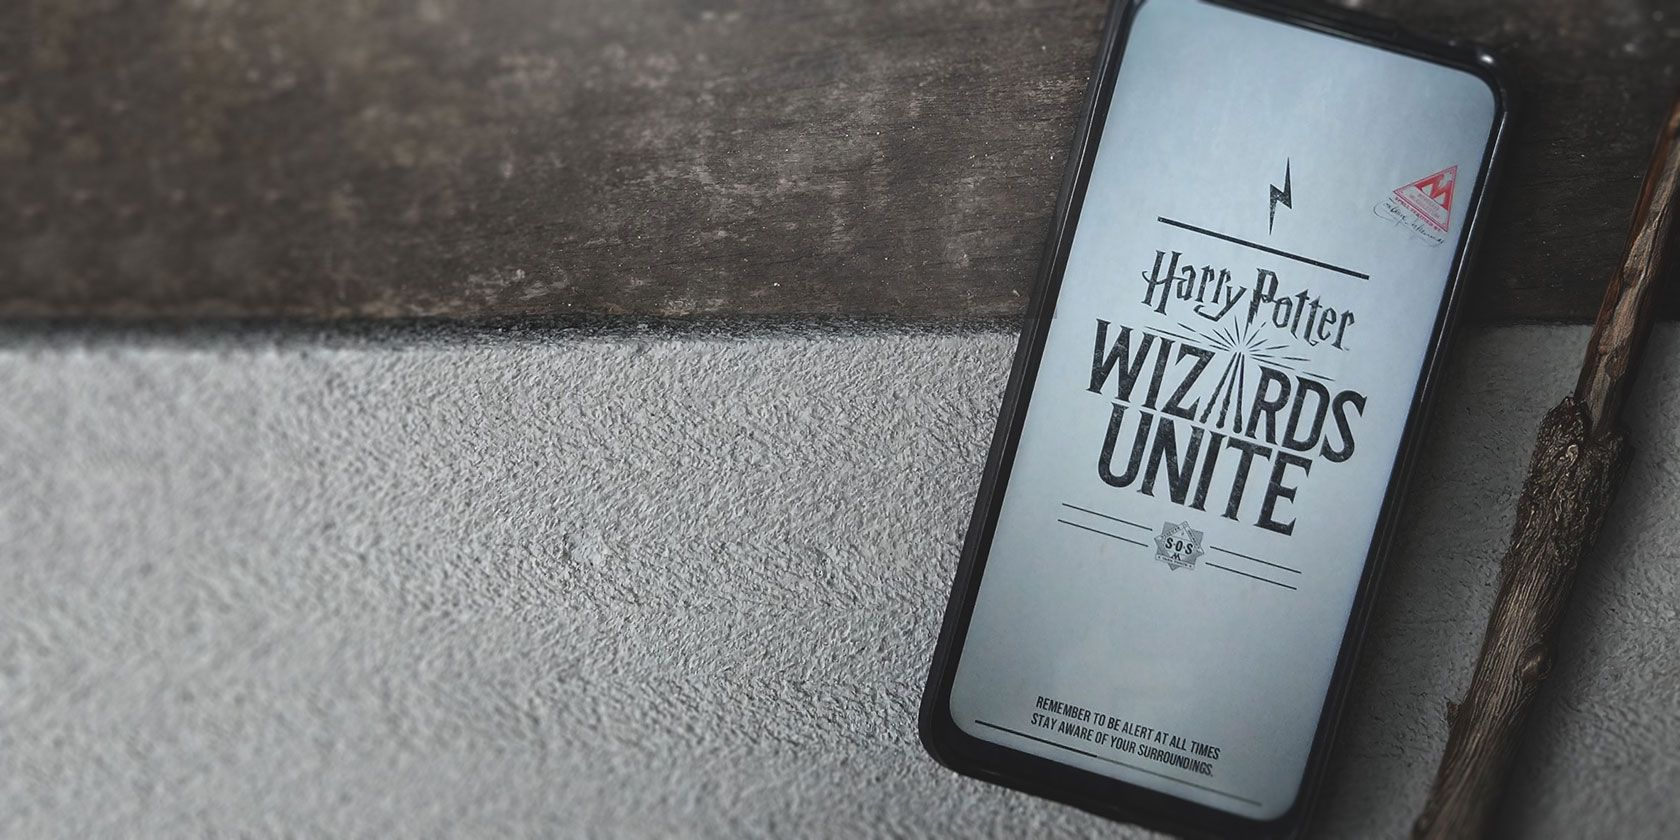 The 10 Best Harry Potter Apps for Android and iPhone